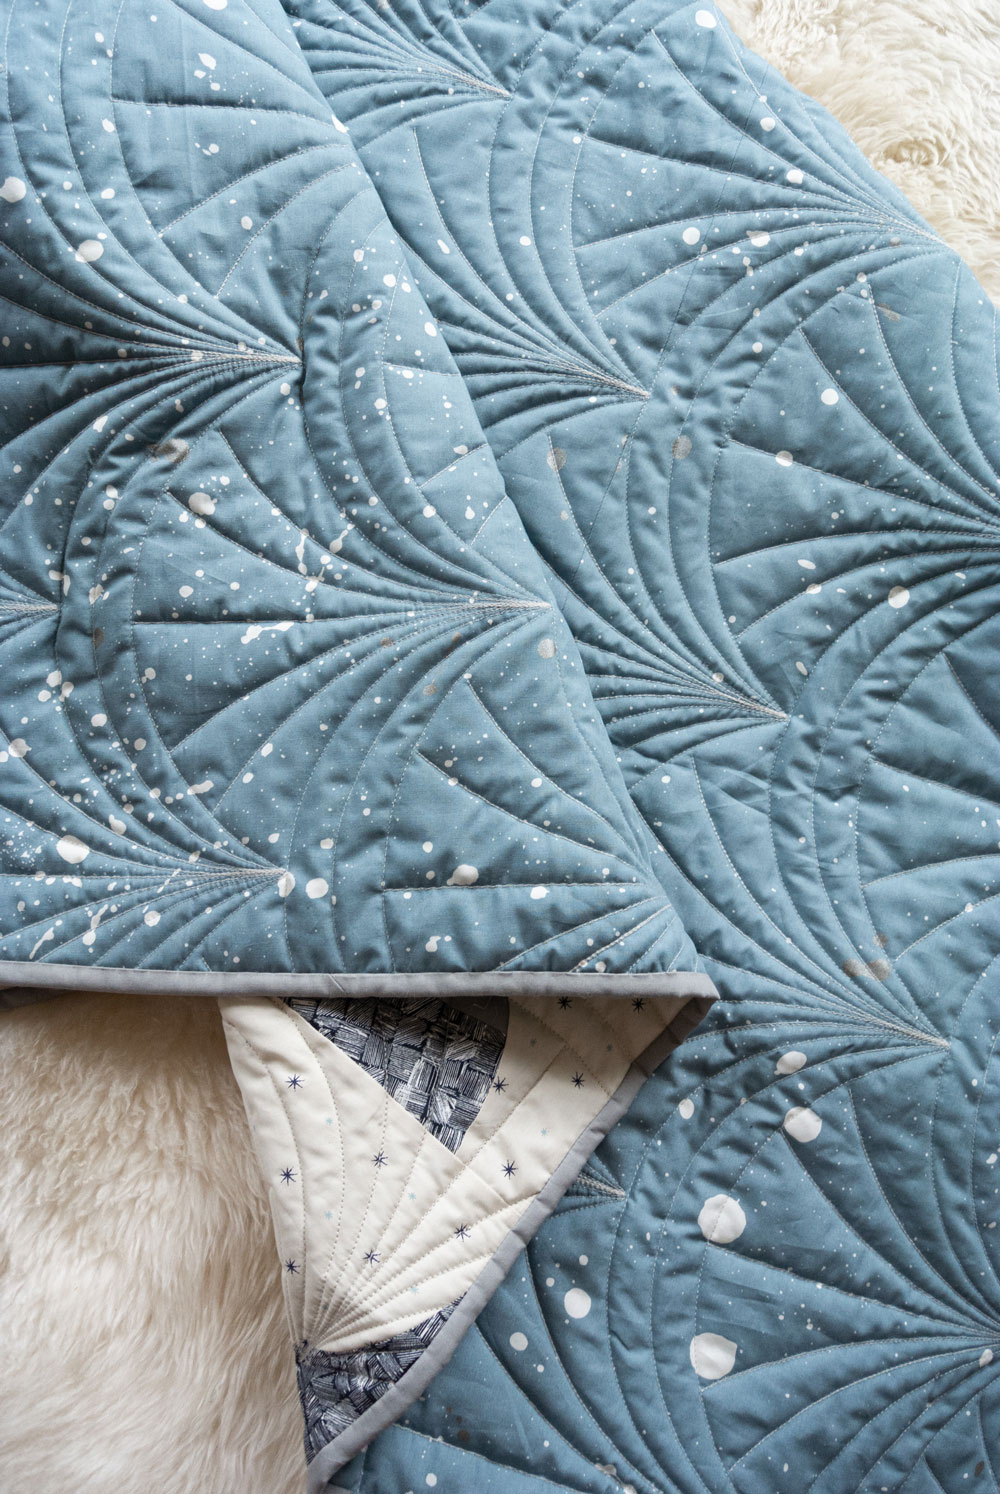 This Great Gatsby inspired Modern Fans quilt kit uses icy blues, grays and metallic silver fabric to bring elegance and pizzazz to a cozy quilt. suzyquilts.com #quiltpattern #quilt #modernquiltpattern